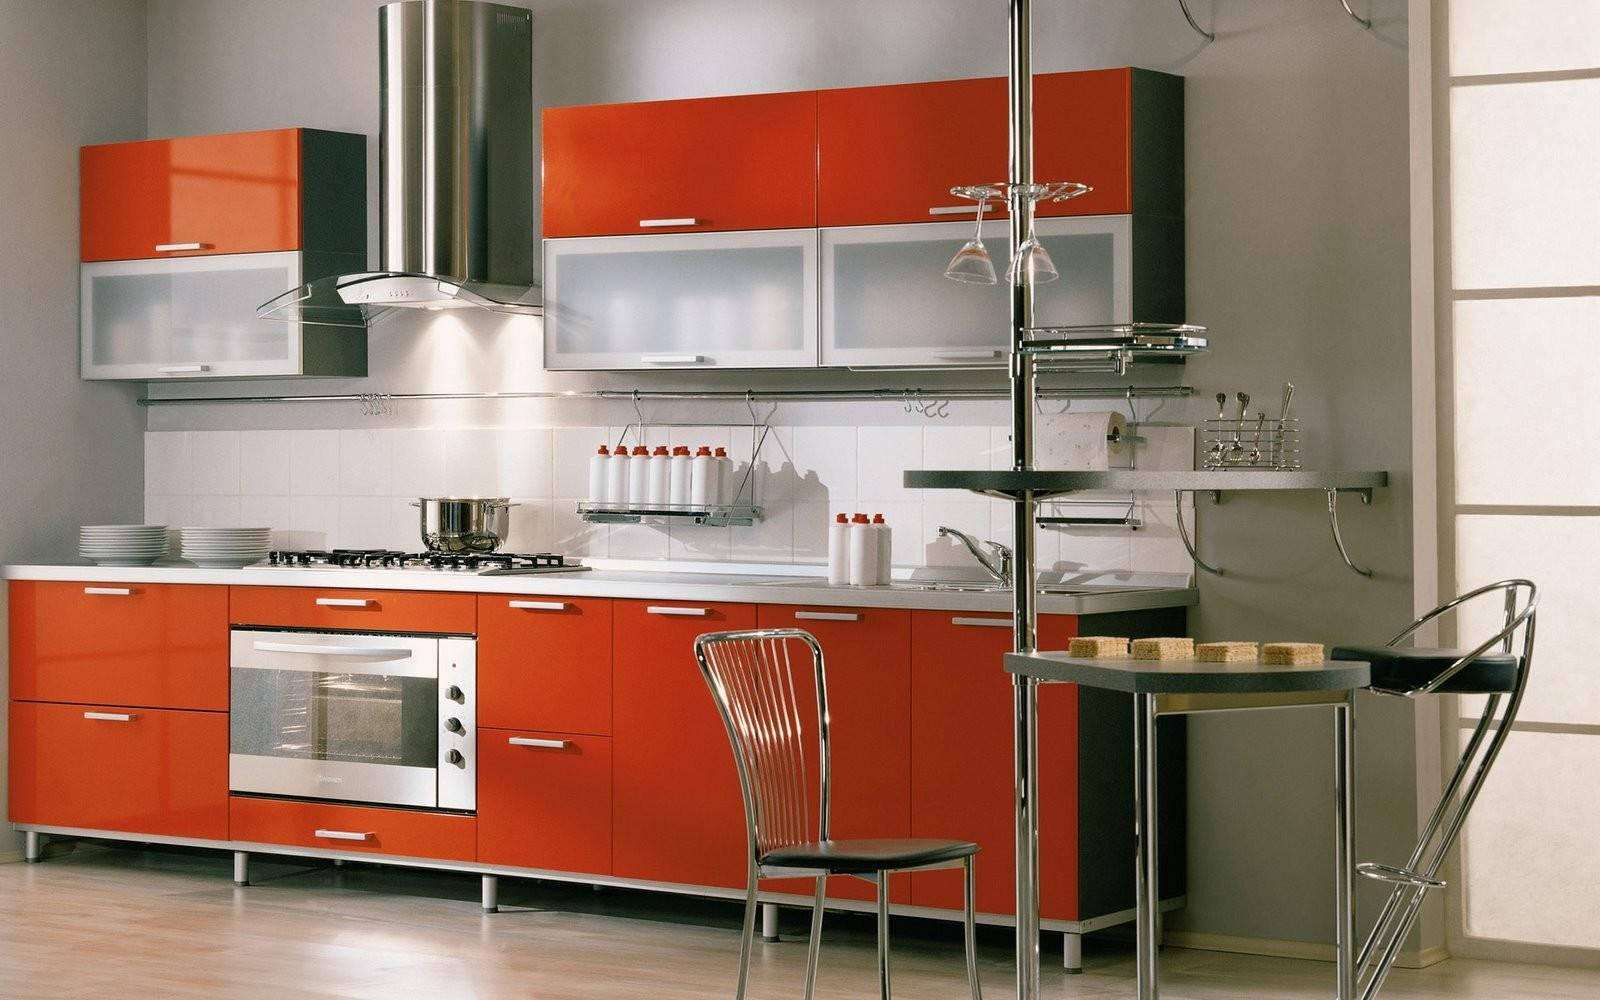 Italian Kitchen Design Red Open Layout Fitted Cabinets